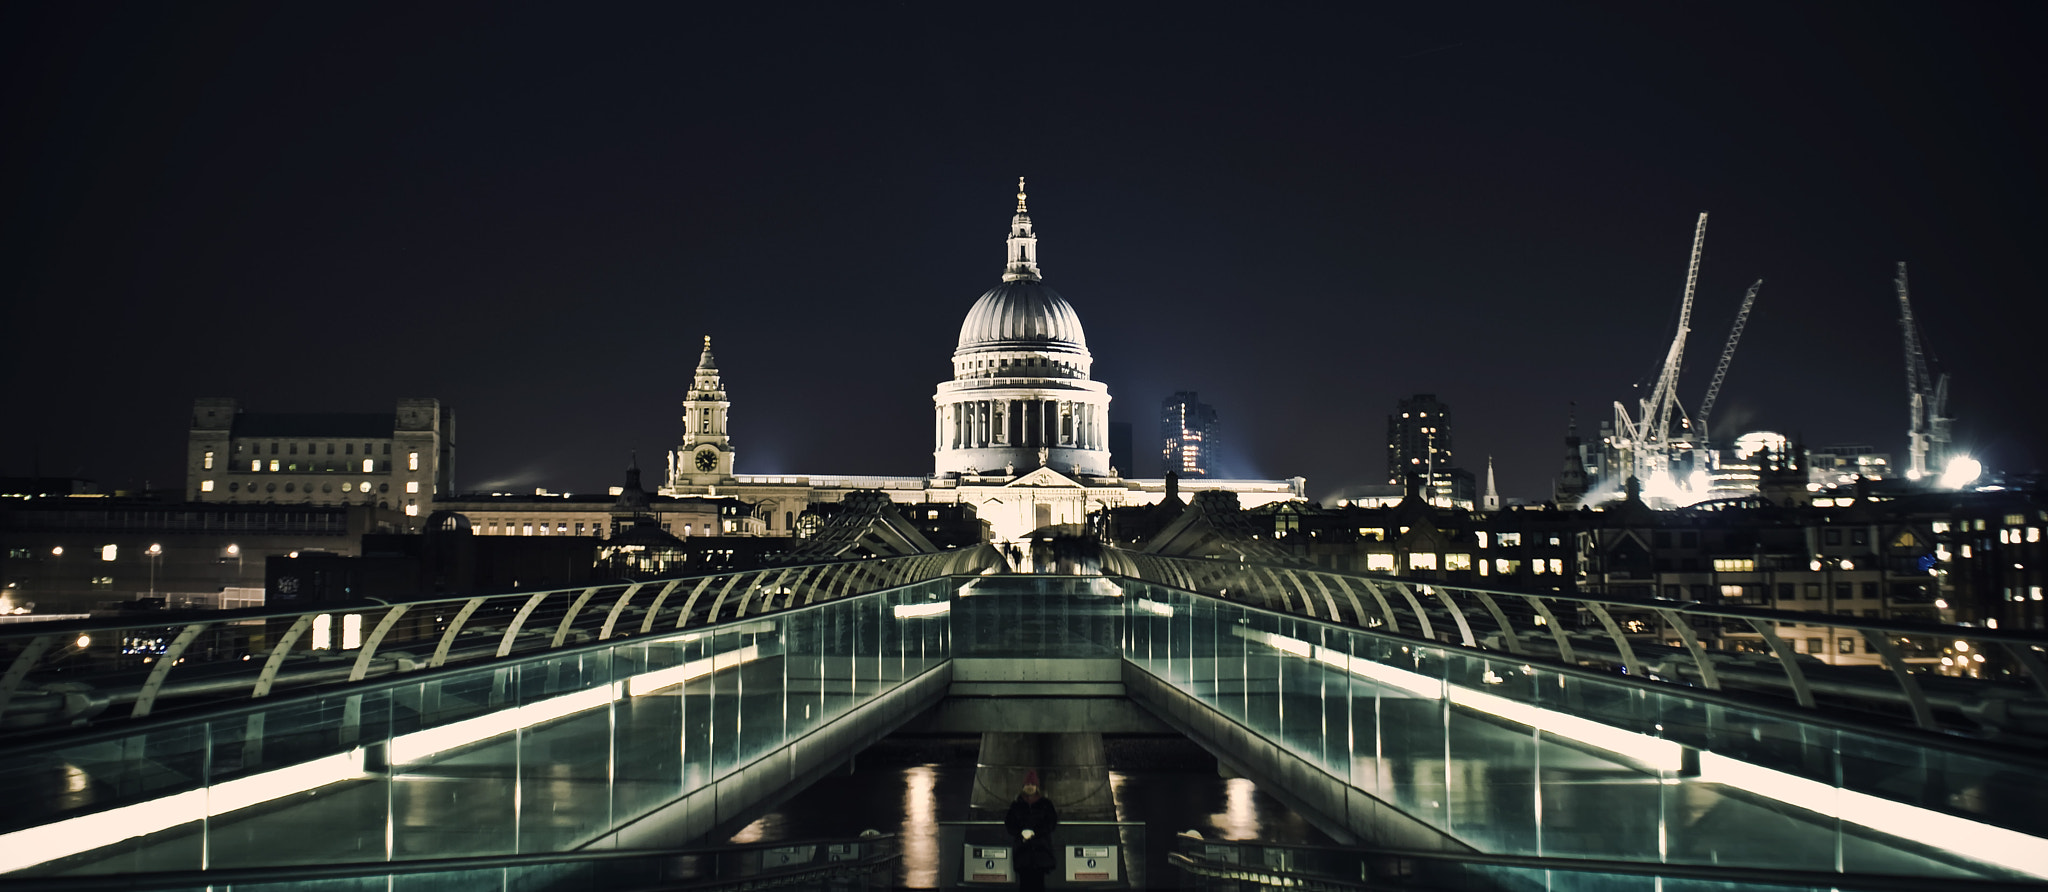 Photograph St Pauls at night by Steve Clancy on 500px